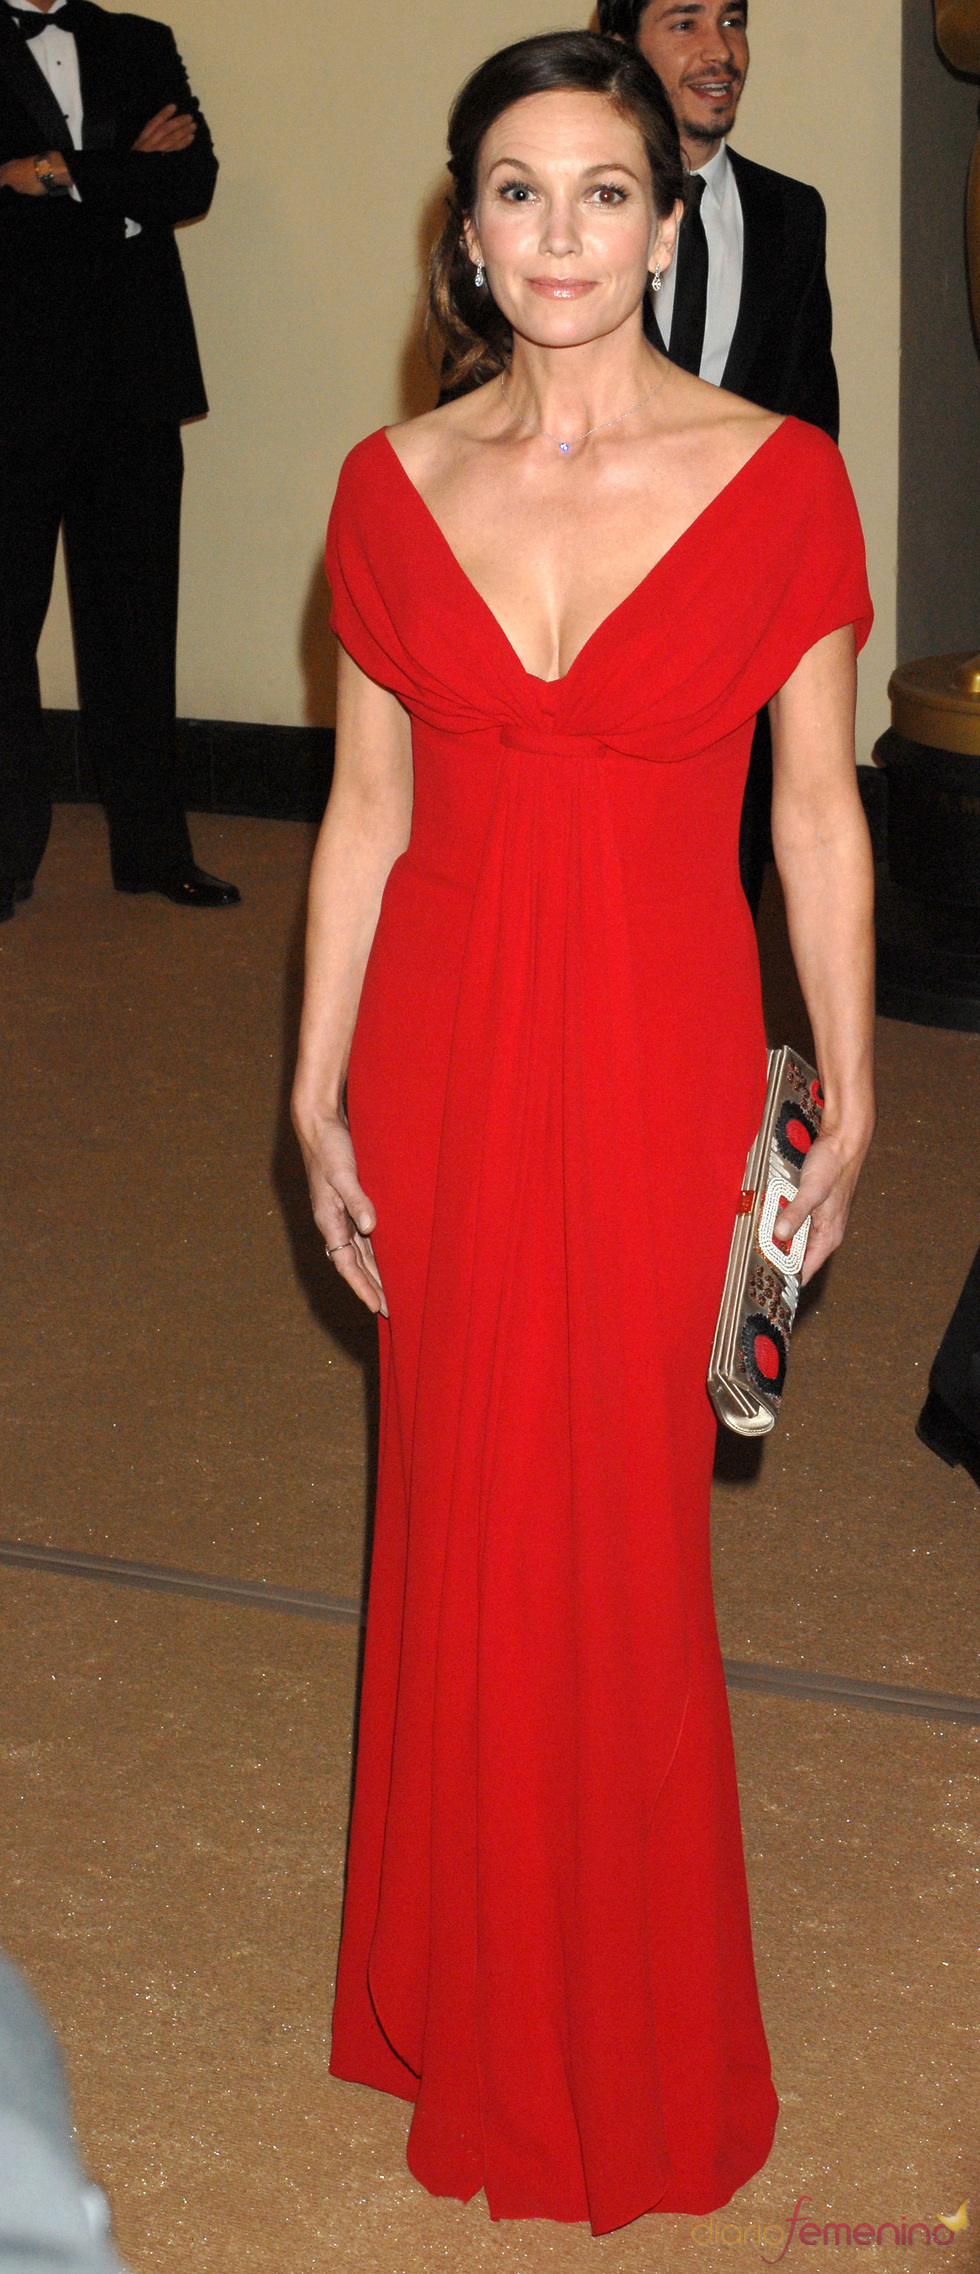 Diana Lane en los Governors Awards 2010